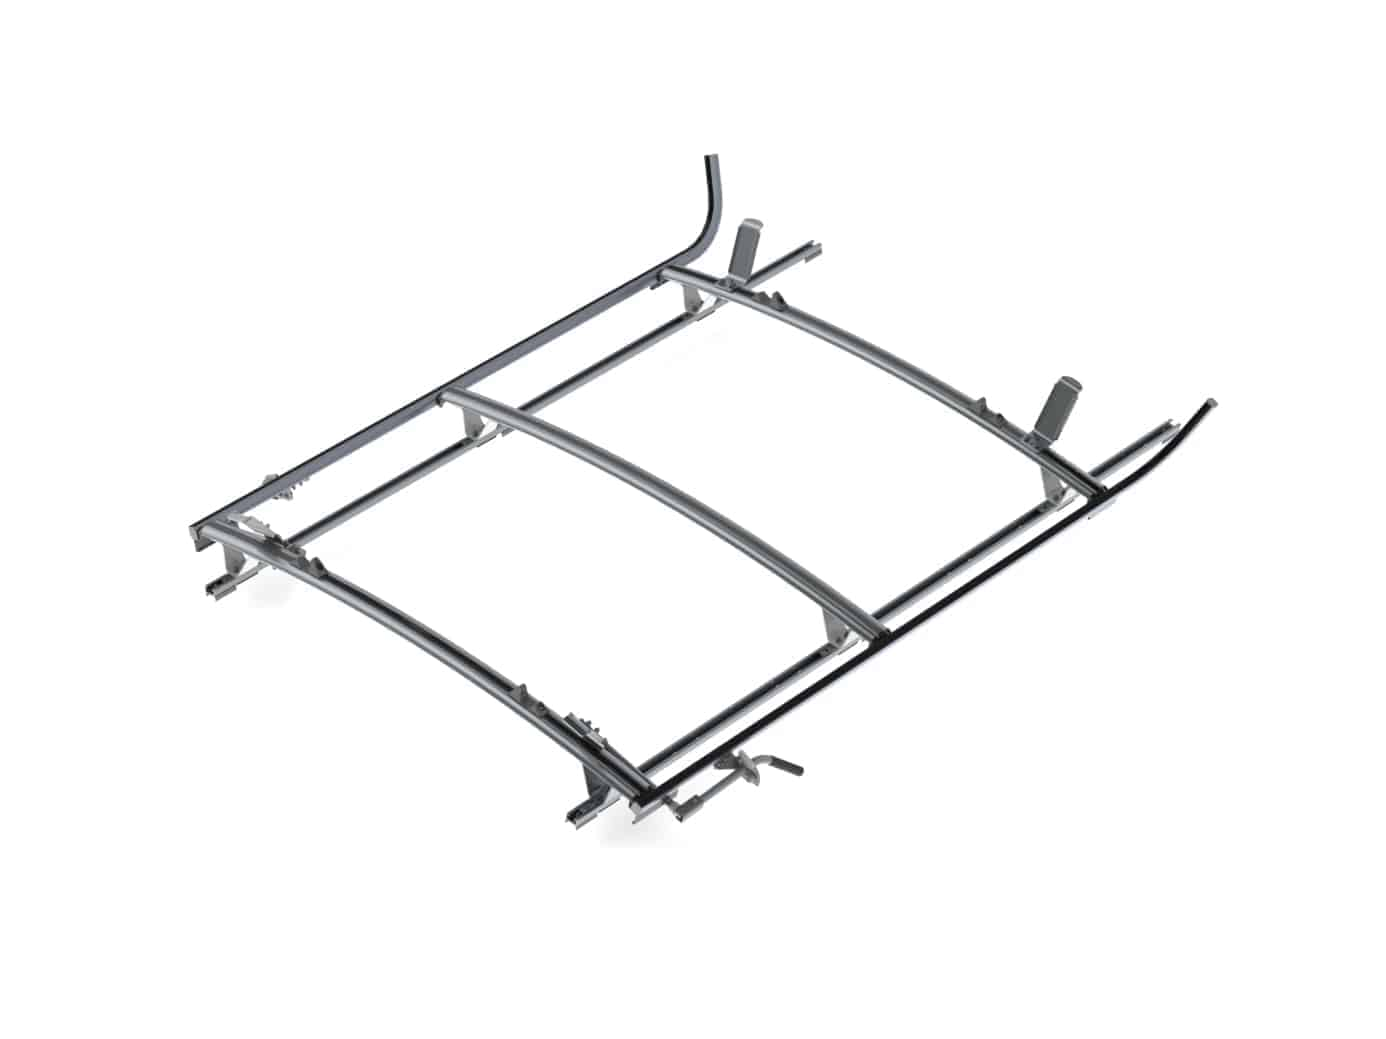 Double Side Ram Promaster Ladder Rack 3 Bar System